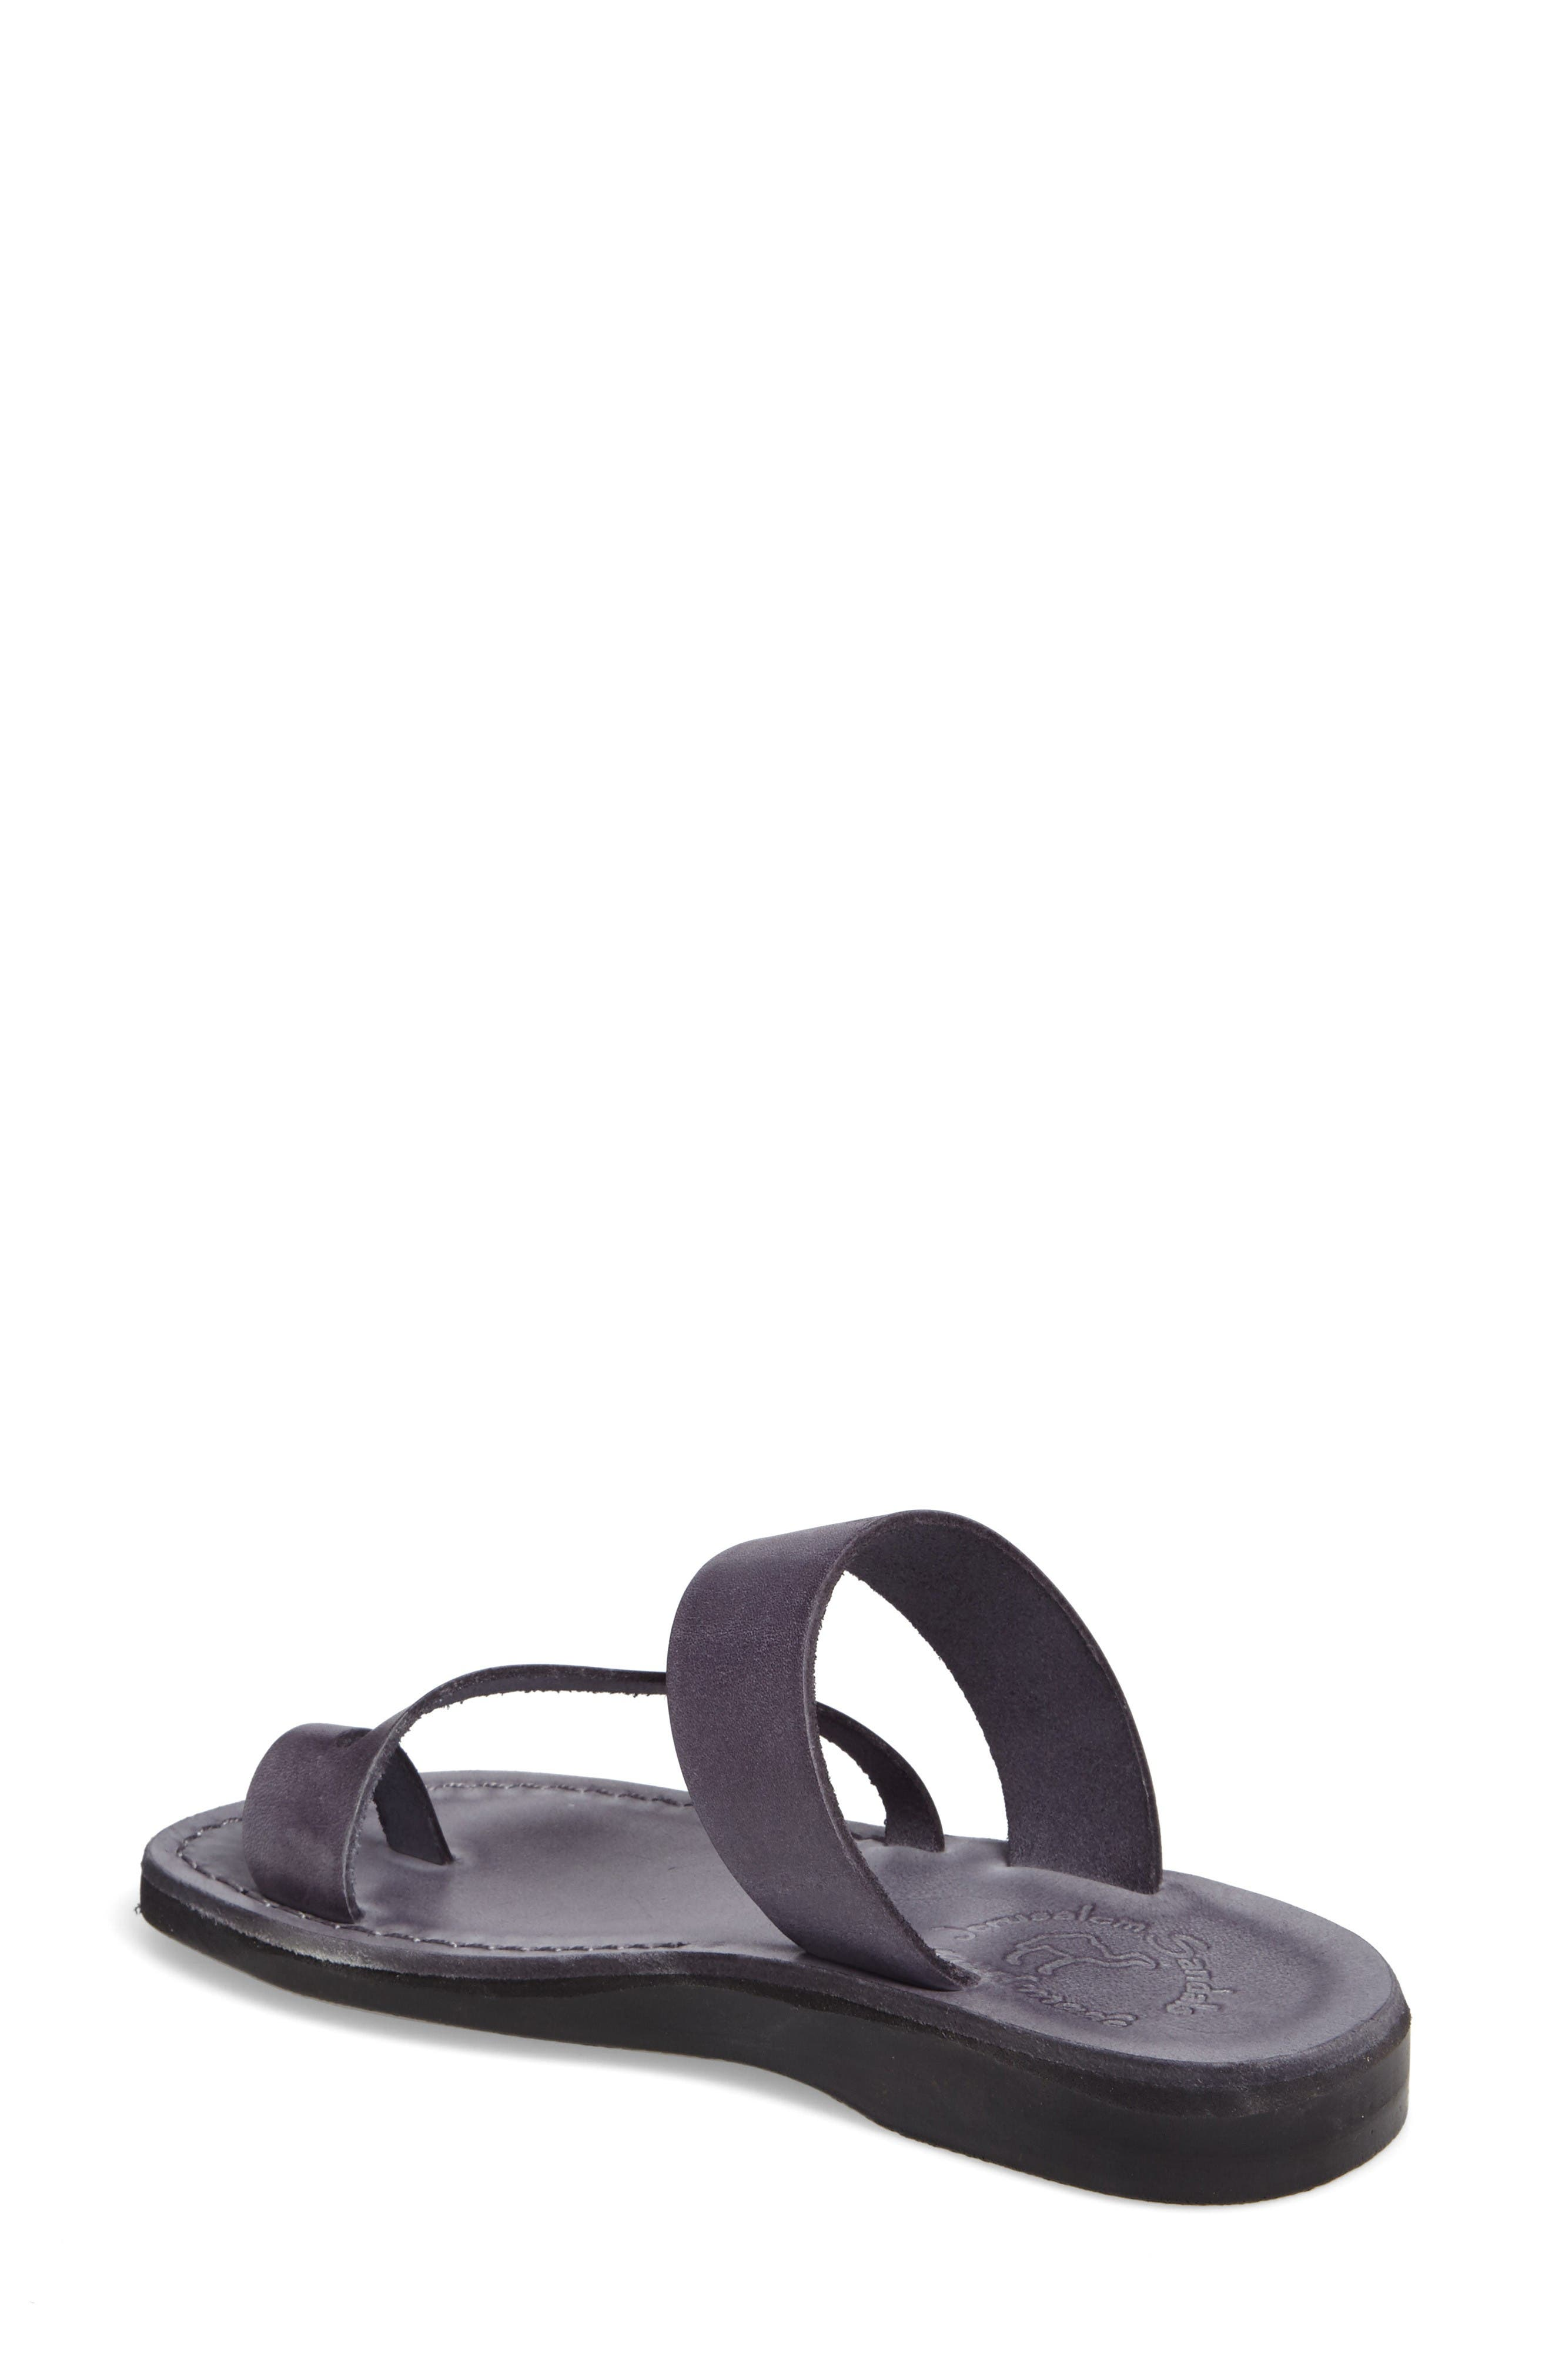 'Zohar' Leather Sandal,                             Alternate thumbnail 2, color,                             Grey Leather